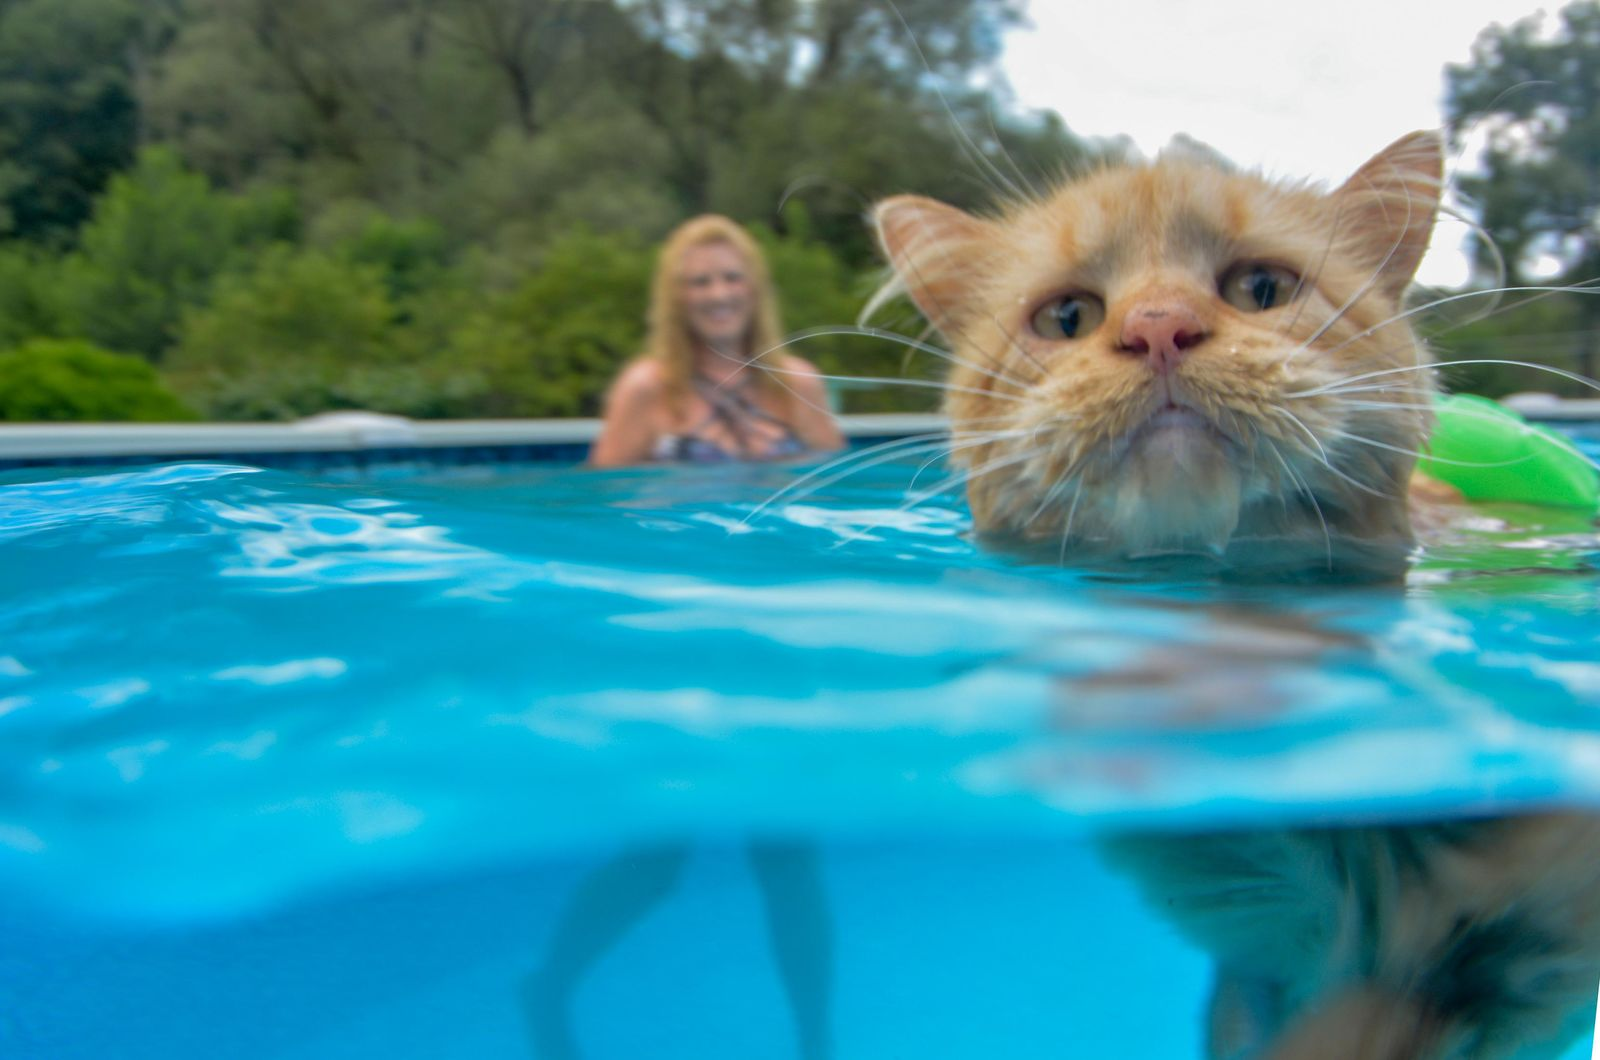 Tissy, a Maine Coon cat that was rescued by the Dawn family of East Brady, Pa., enjoys cooling off in the pool. Thursday. August 1, 2019.  (Louis B. Ruediger/Pittsburgh Tribune-Review via AP)